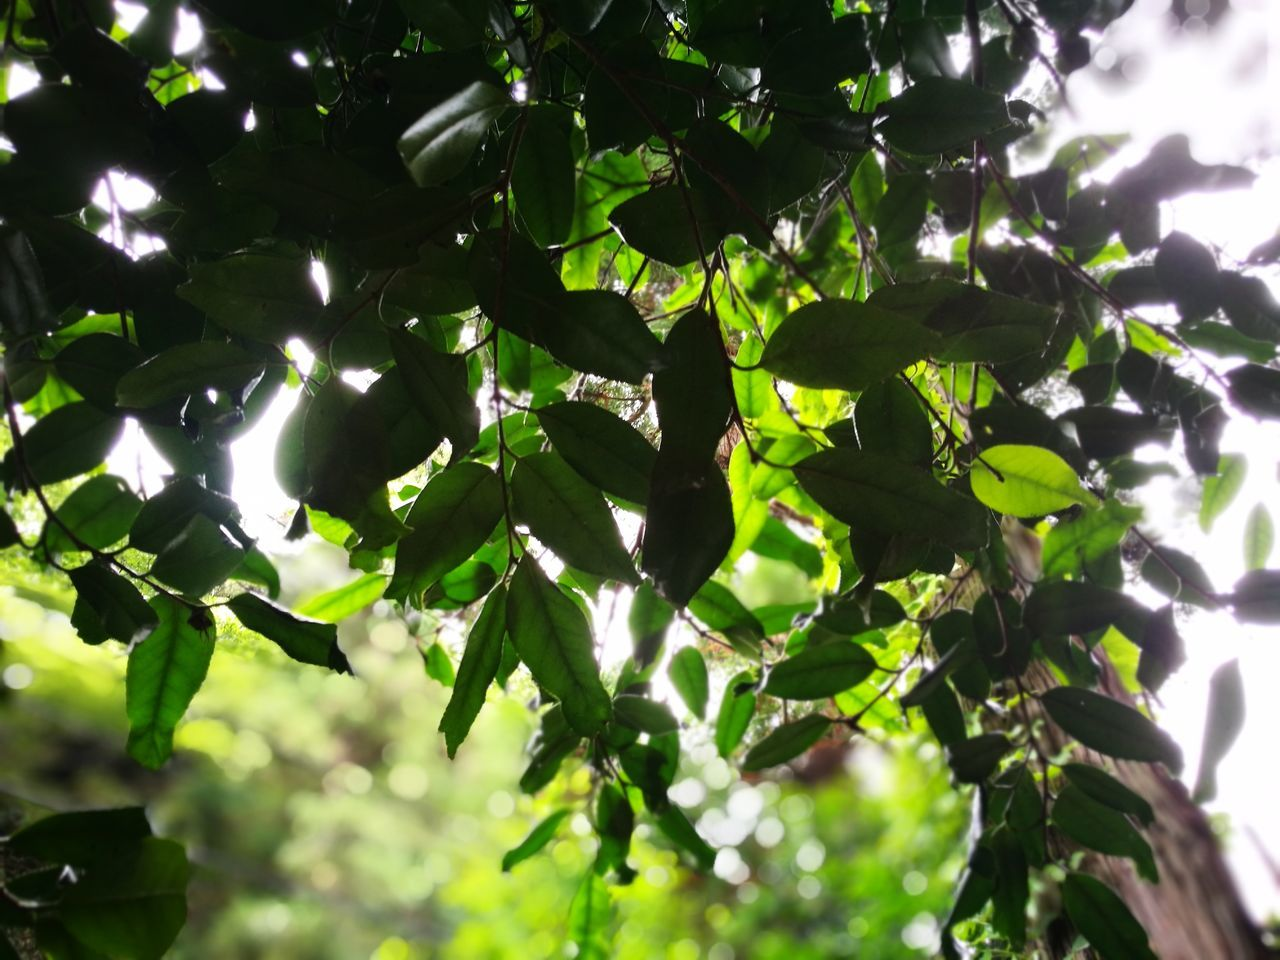 growth, tree, nature, no people, low angle view, leaf, plant, outdoors, day, beauty in nature, close-up, branch, sky